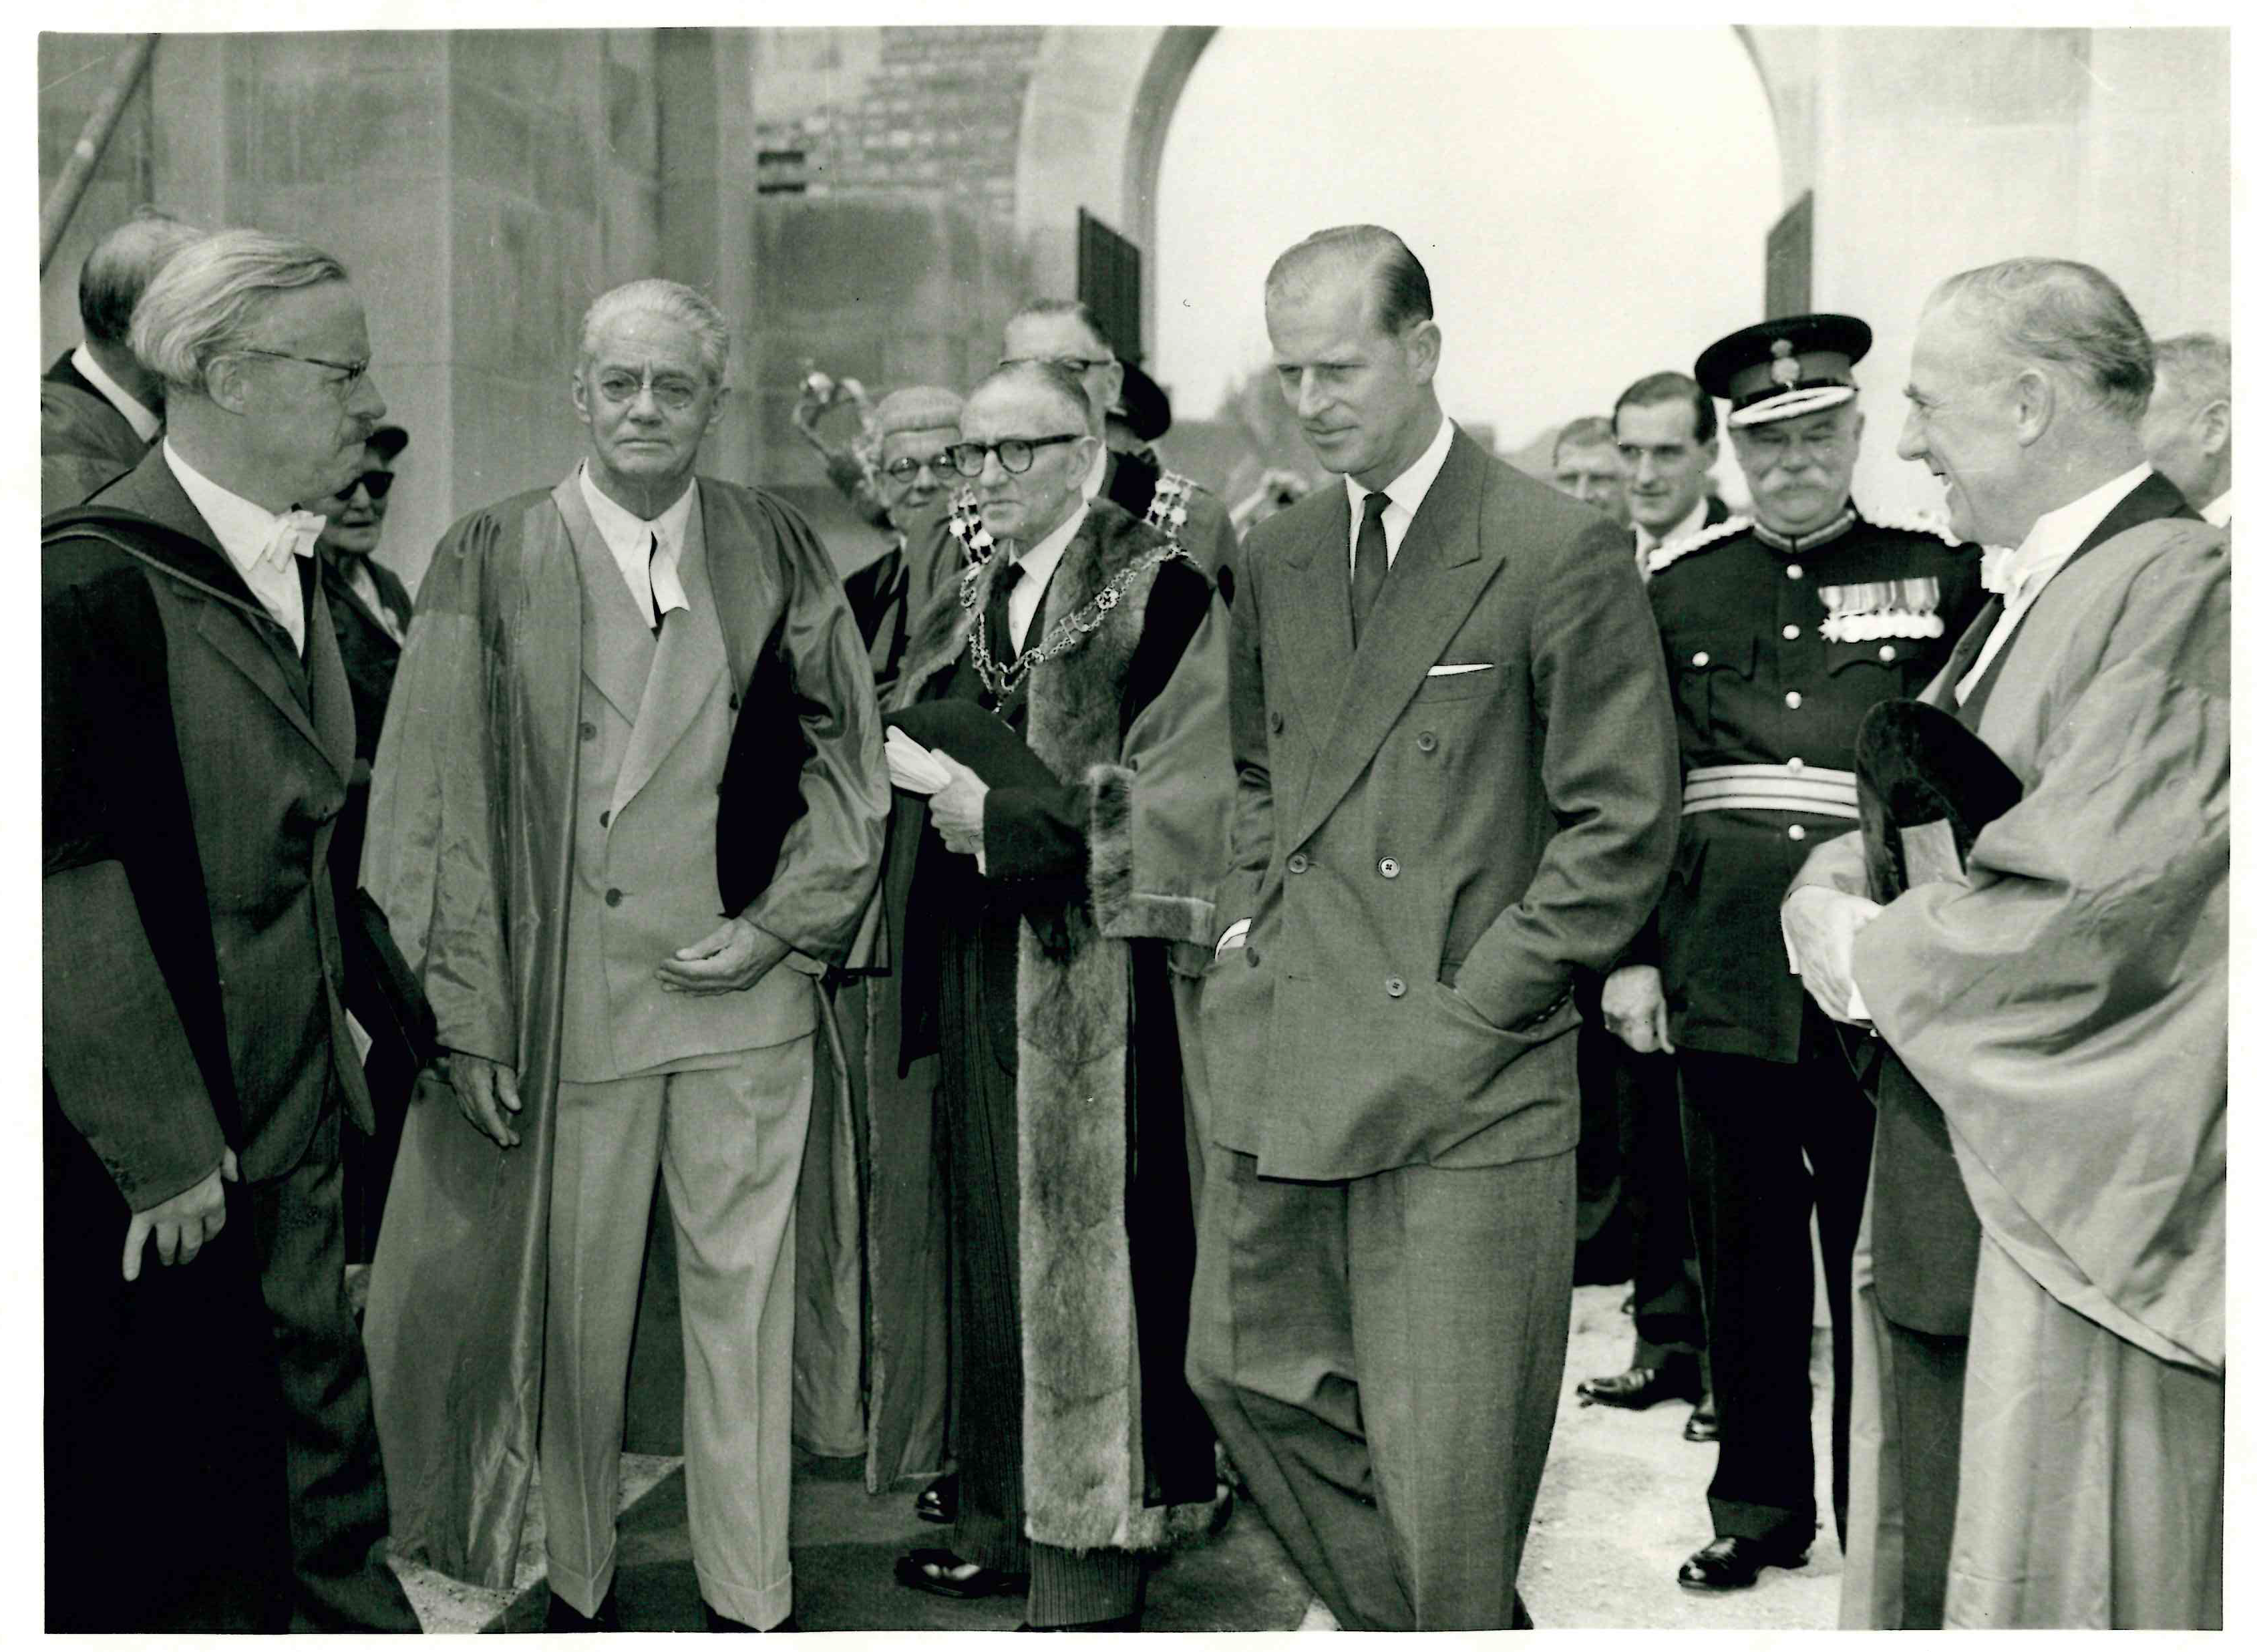 Norman Chester, Lord Nuffield and HRH the Duke of Edinburgh